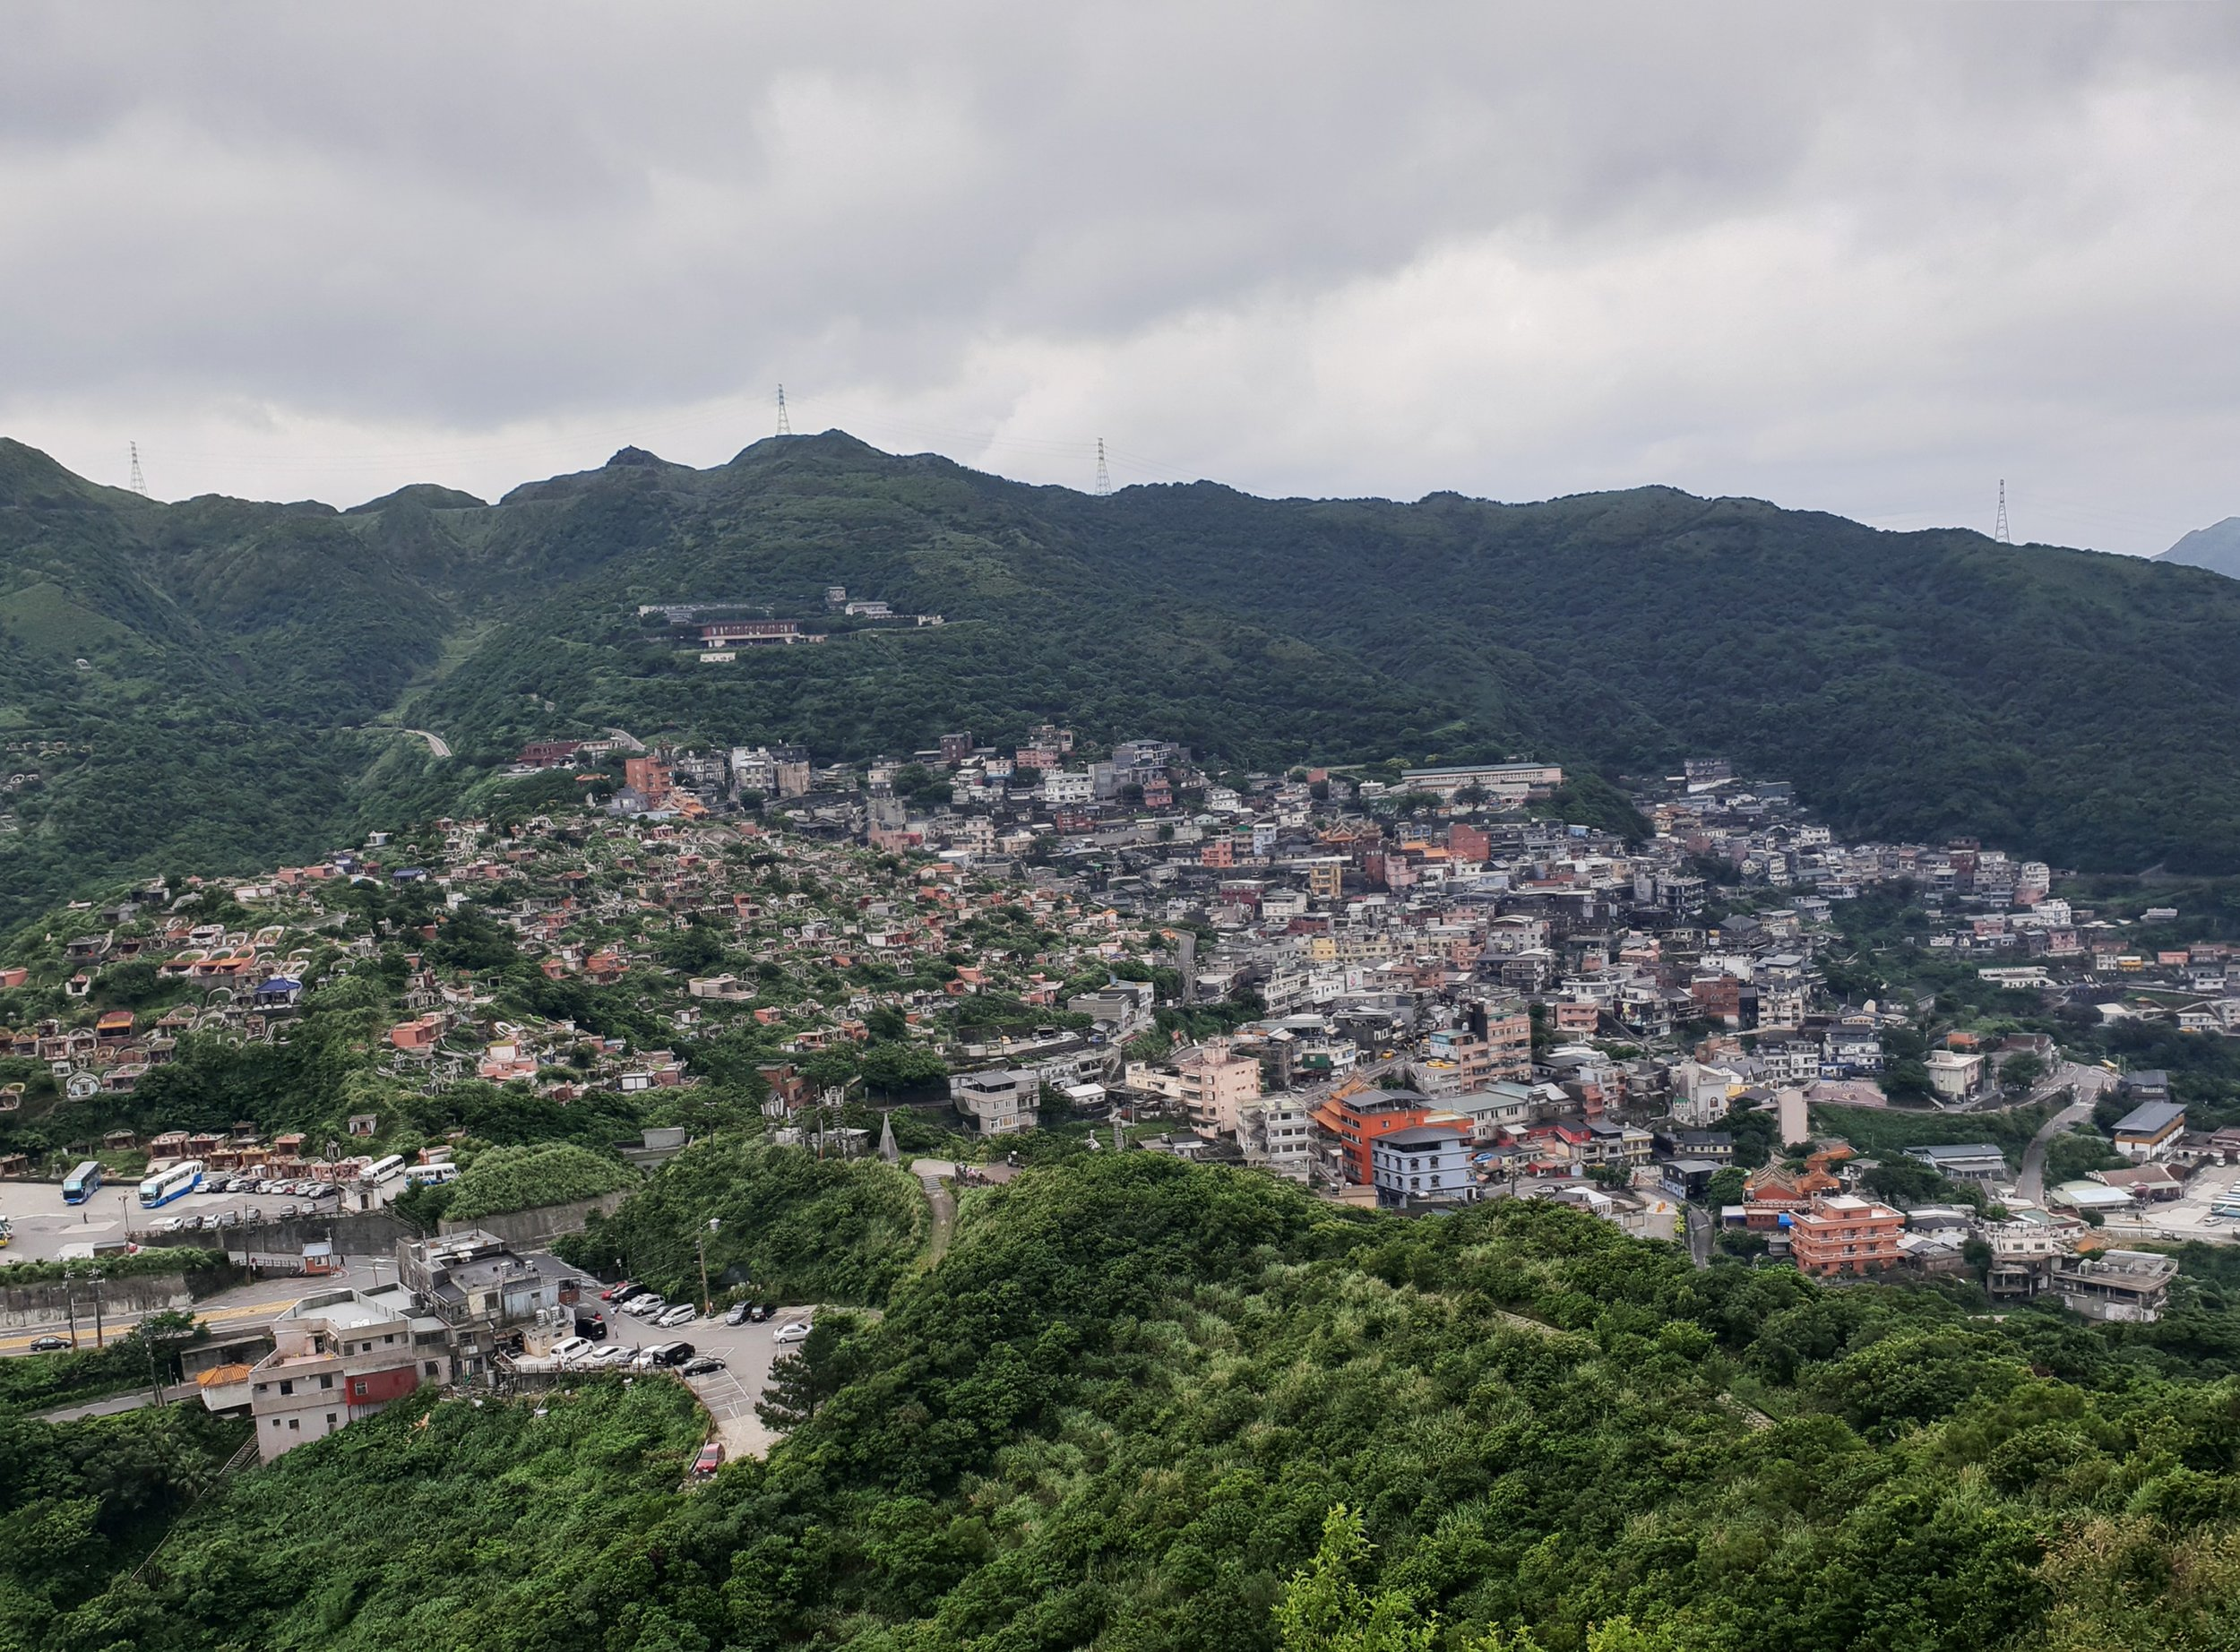 Jiufen town and its large cemetery